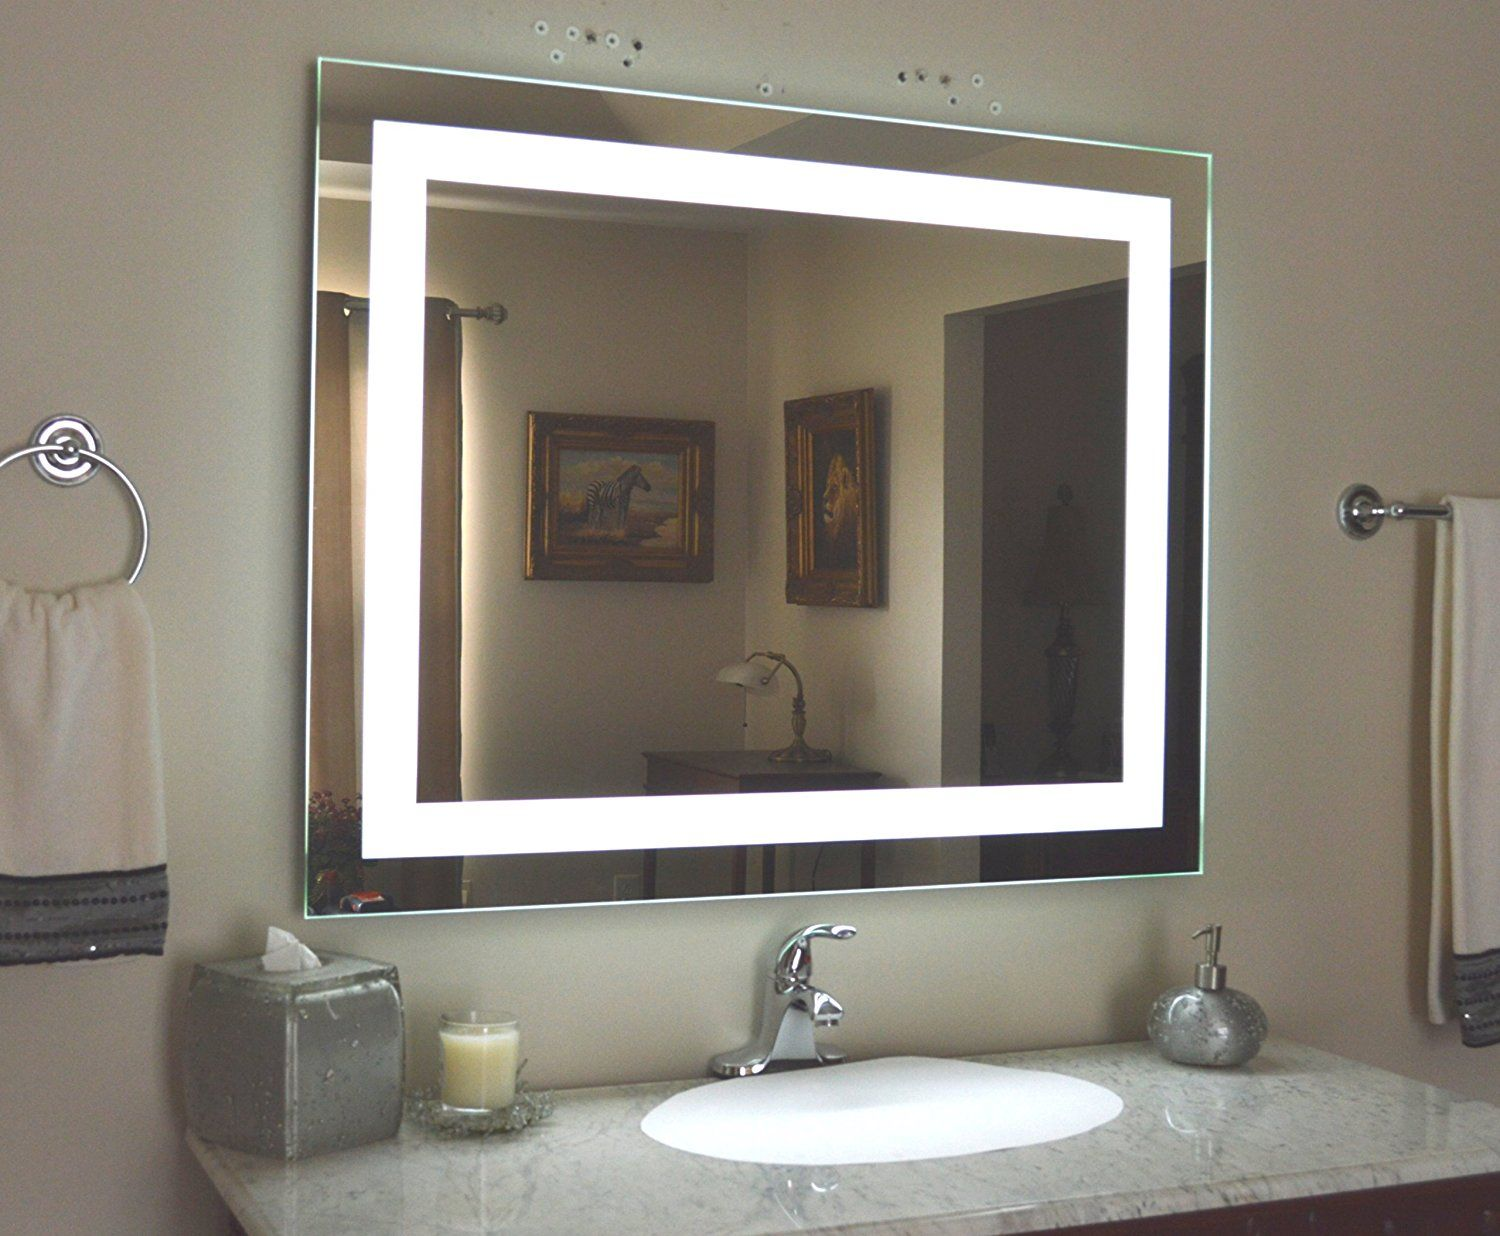 Nice Lighted Bathroom Vanity Mirror Trend 98 For Your Home Decoration Ideas With